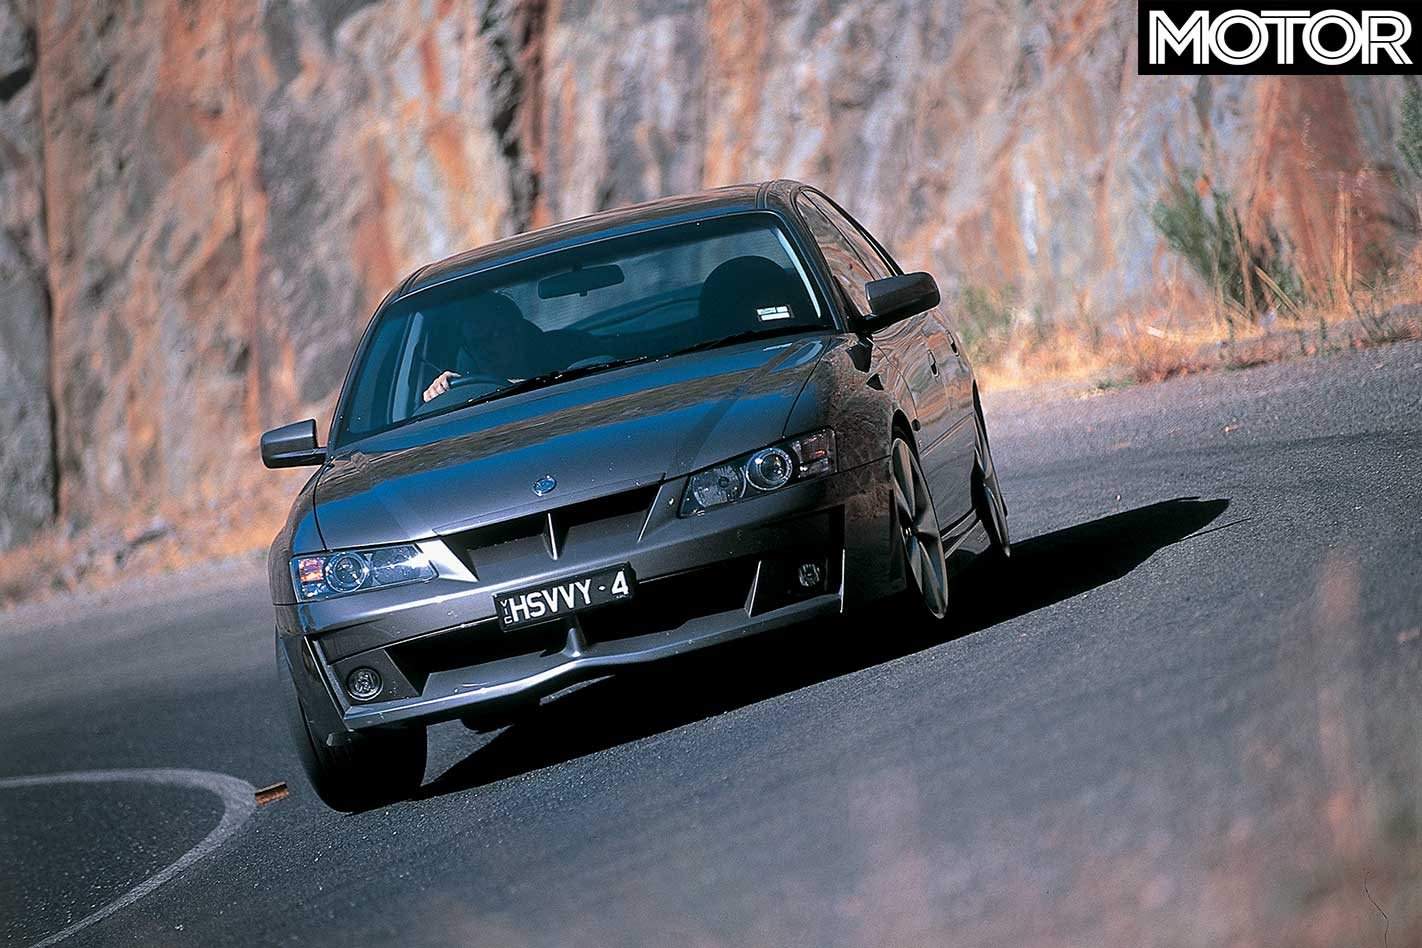 2003 FPV Falcon GT v HSV Clubsport comparison review: classic MOTOR